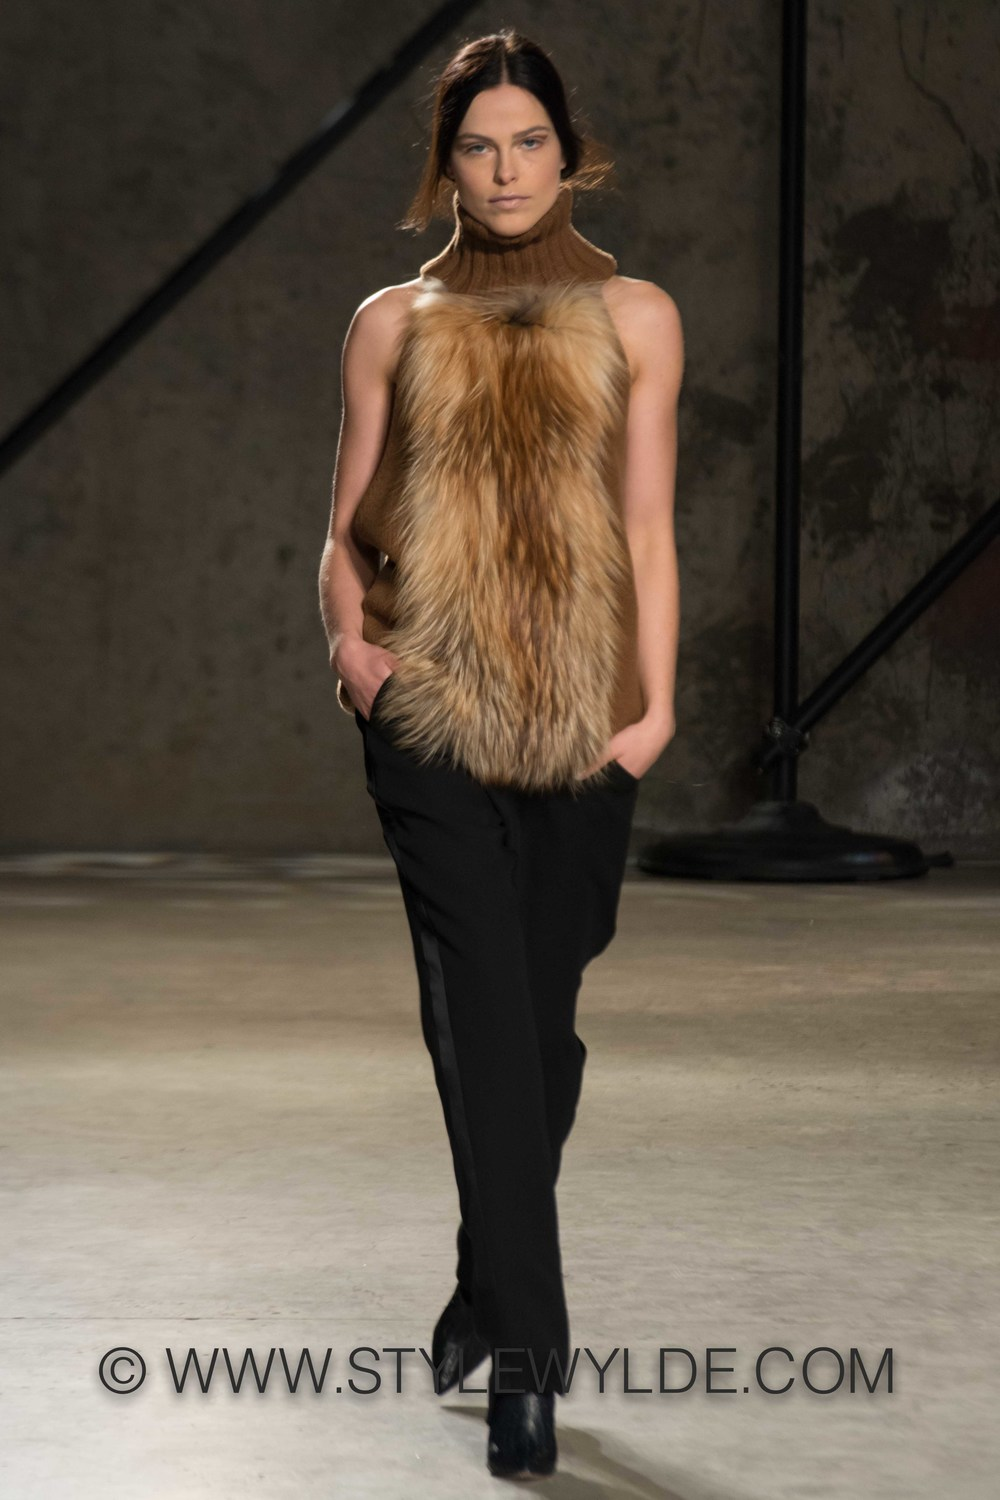 stylewylde_sally_lapointe_fw_2014-13.jpg